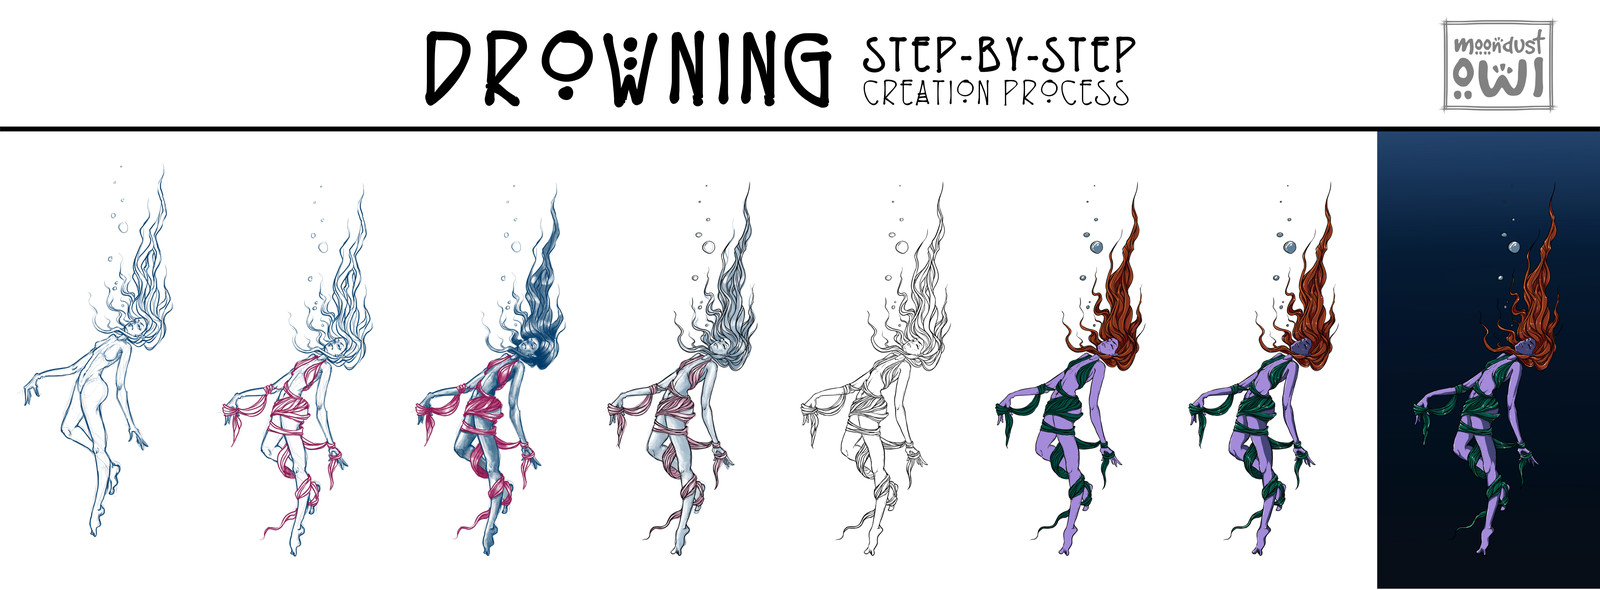 Steps of the creation process